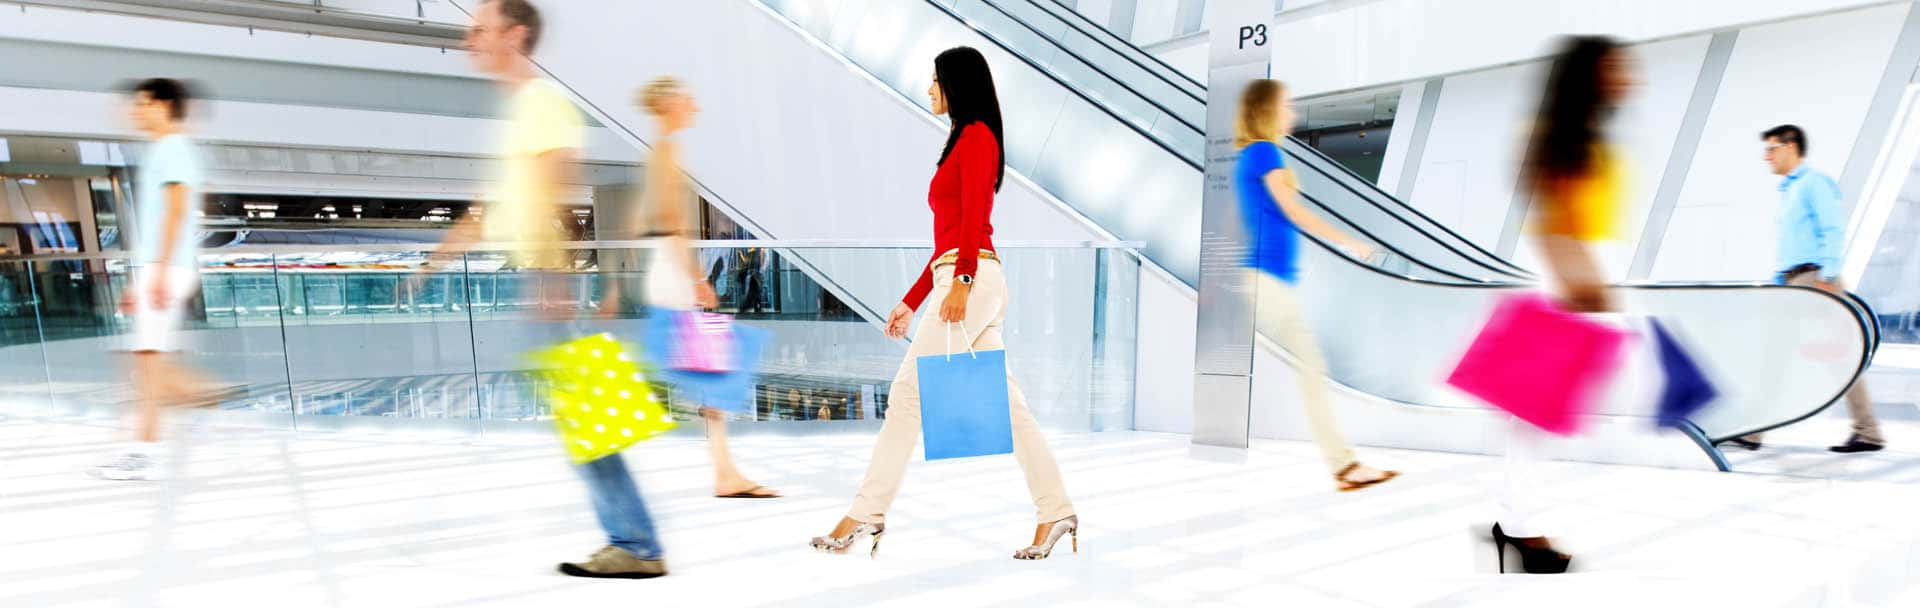 What's going on in Retailing - Hot ITem